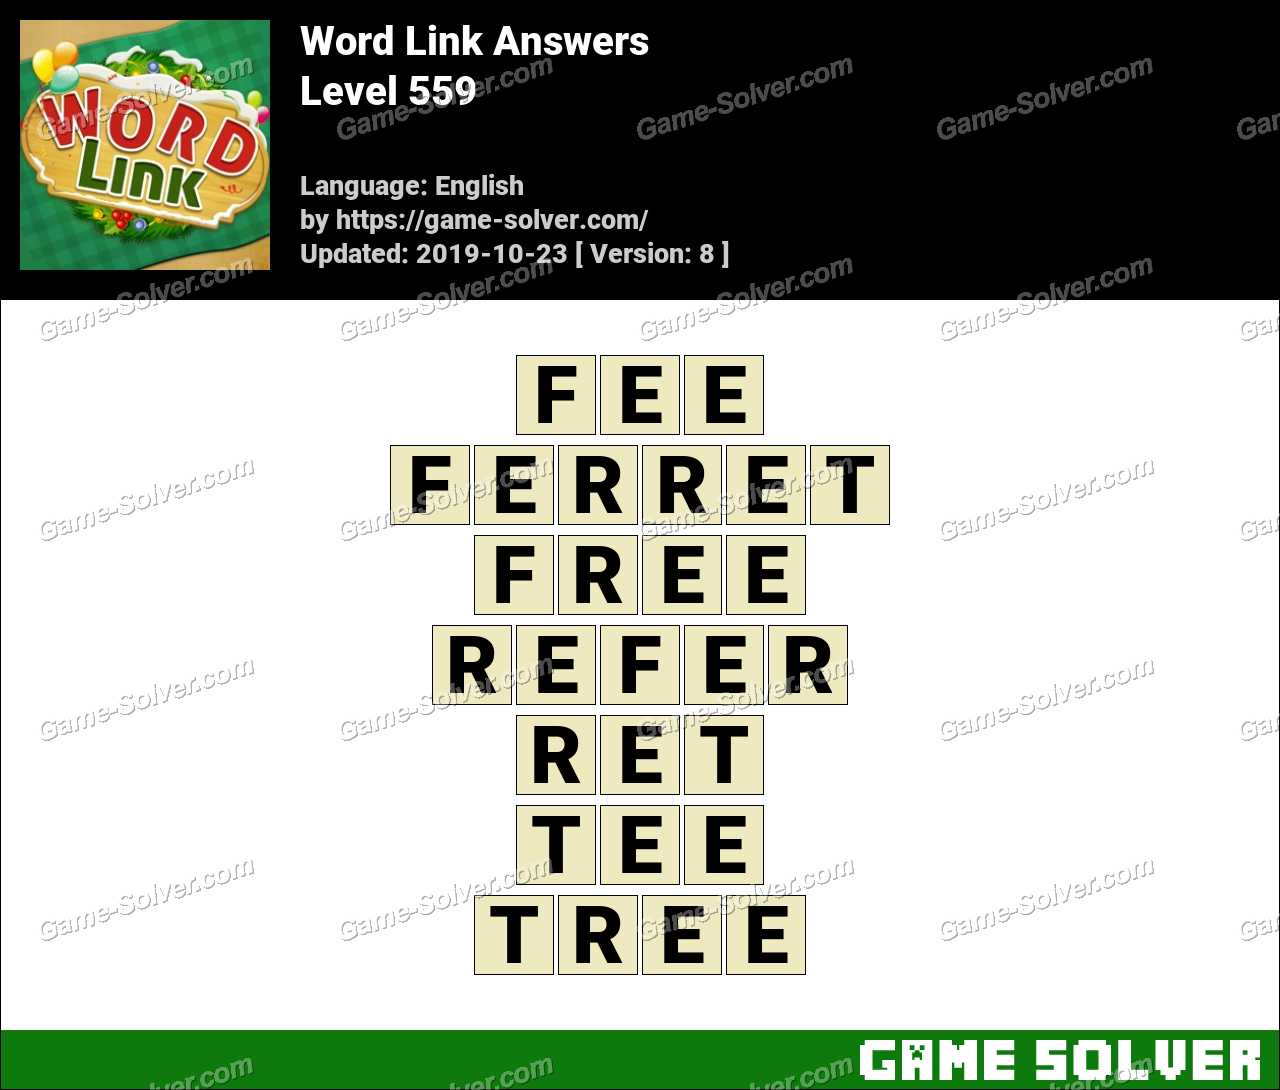 Word Link Level 559 Answers